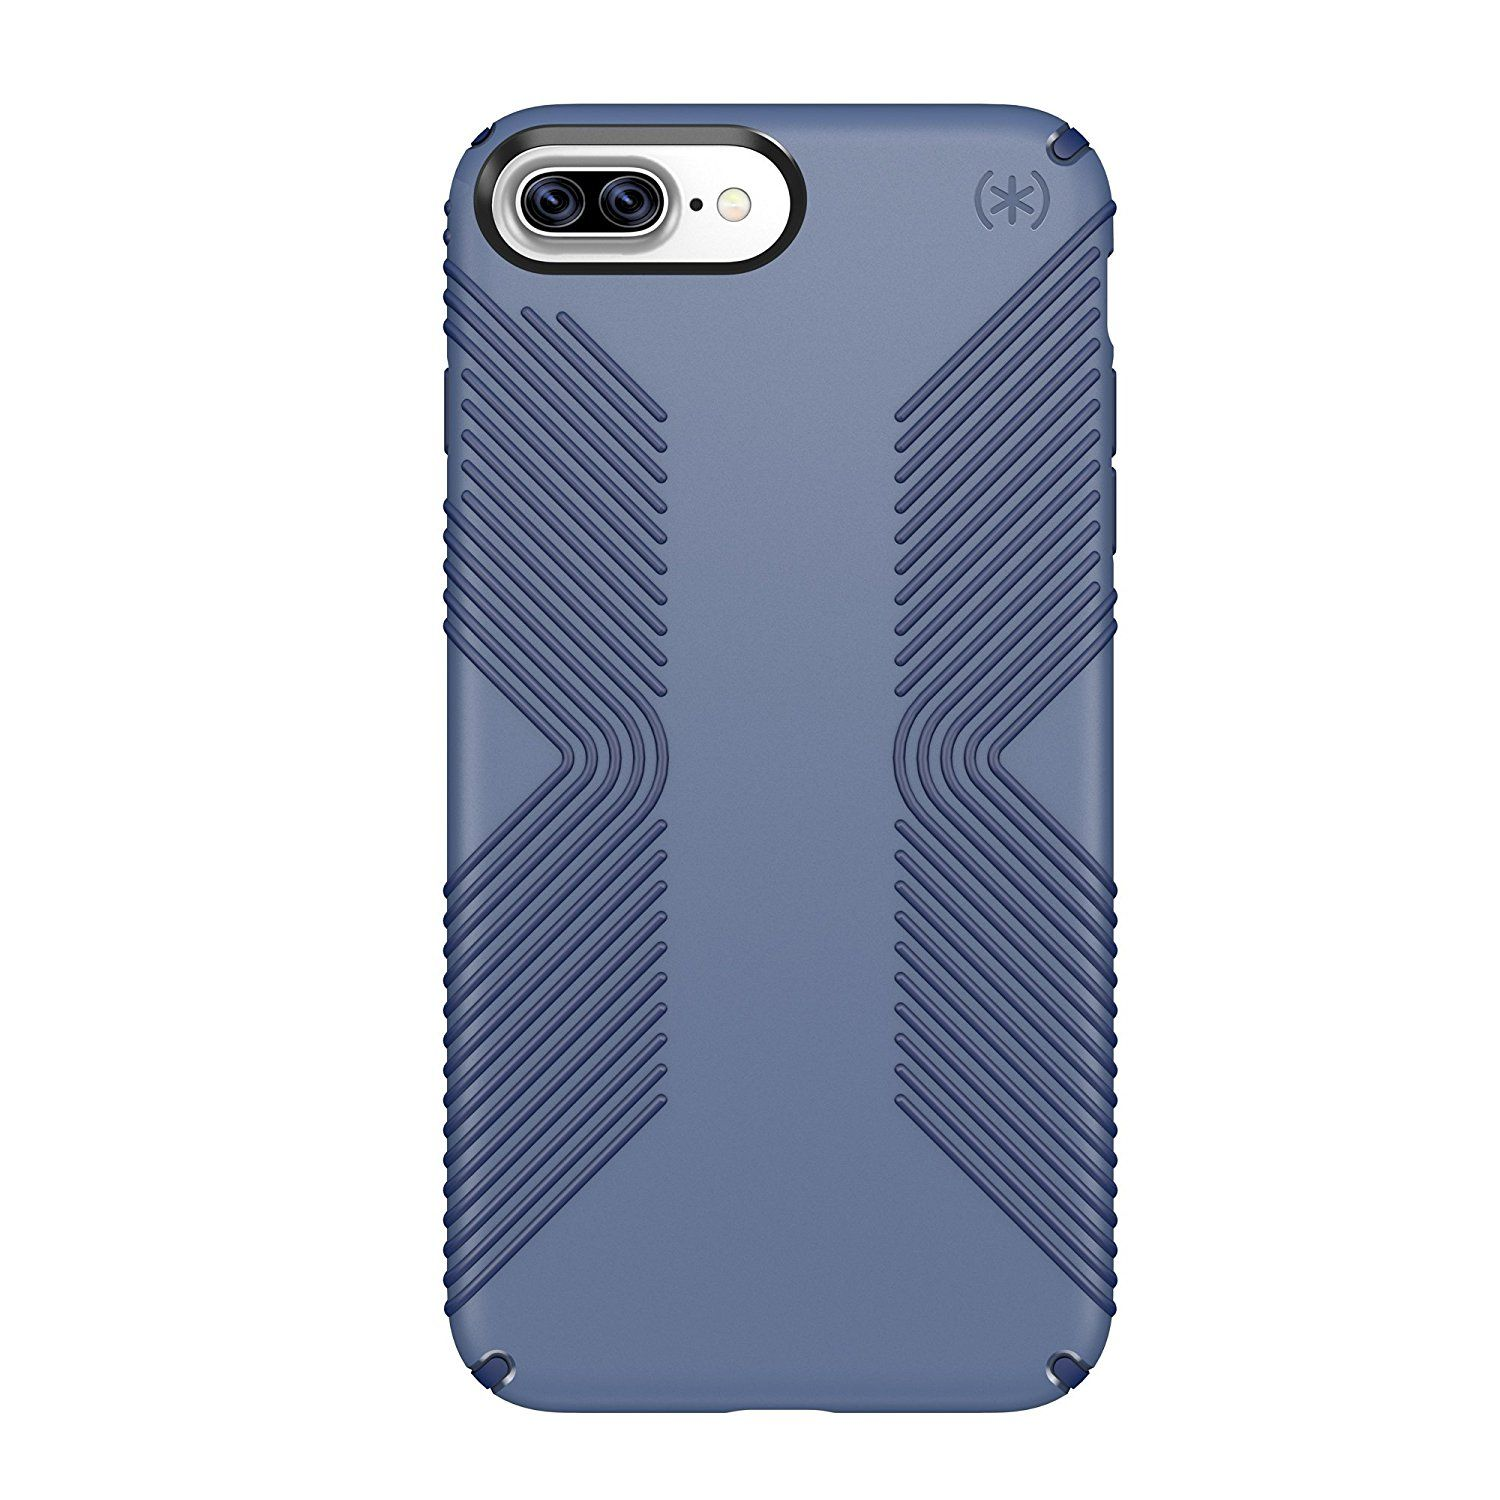 hot sale online c0201 3f5ae Amazon.com: Speck Products Presidio Grip Cell Phone Case for iPhone ...